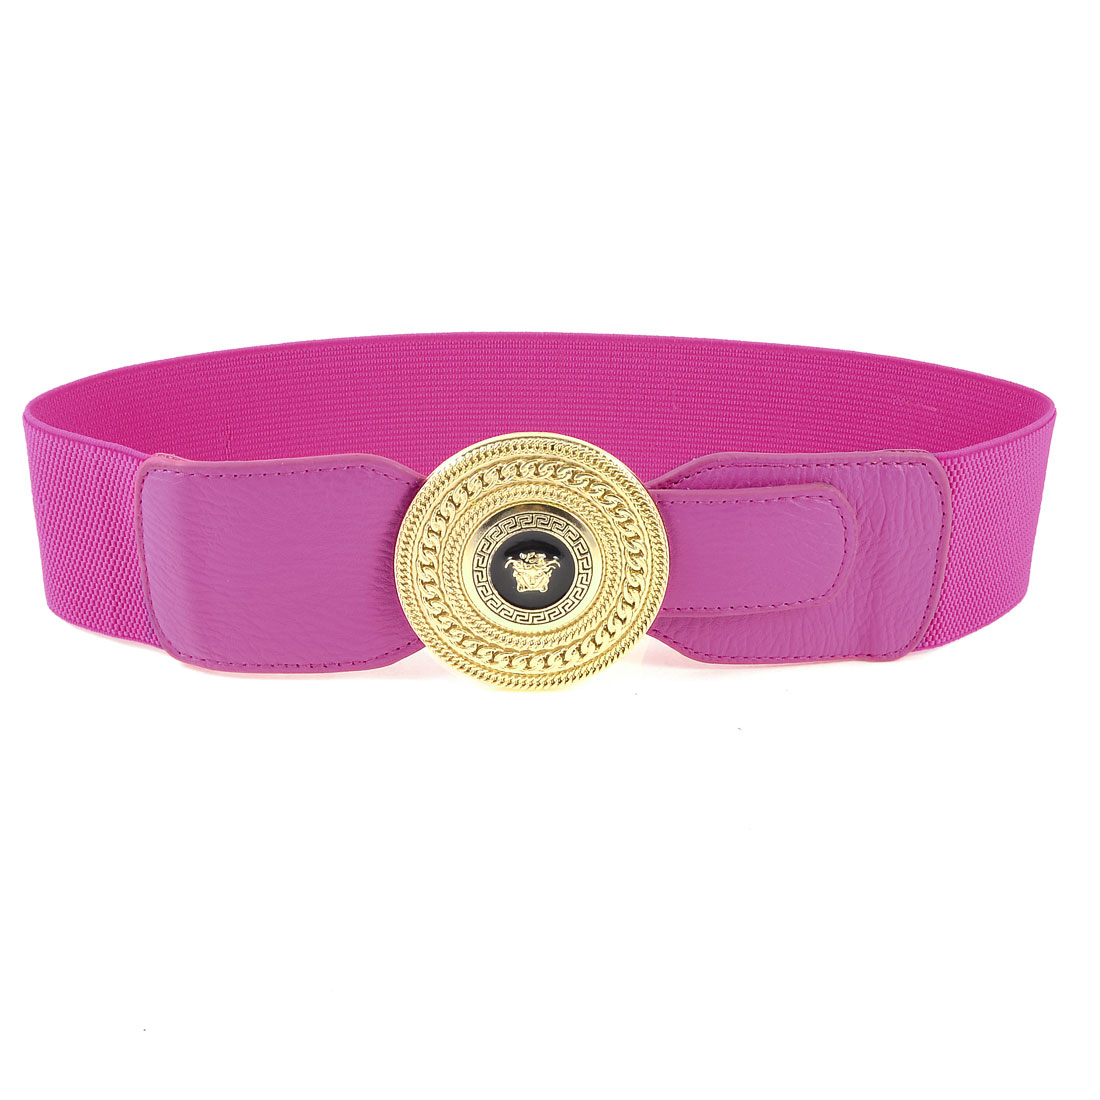 Single Pin Buckle 6cm Width Stretchy Waist Cinch Band Belt Fuchsia for Woman